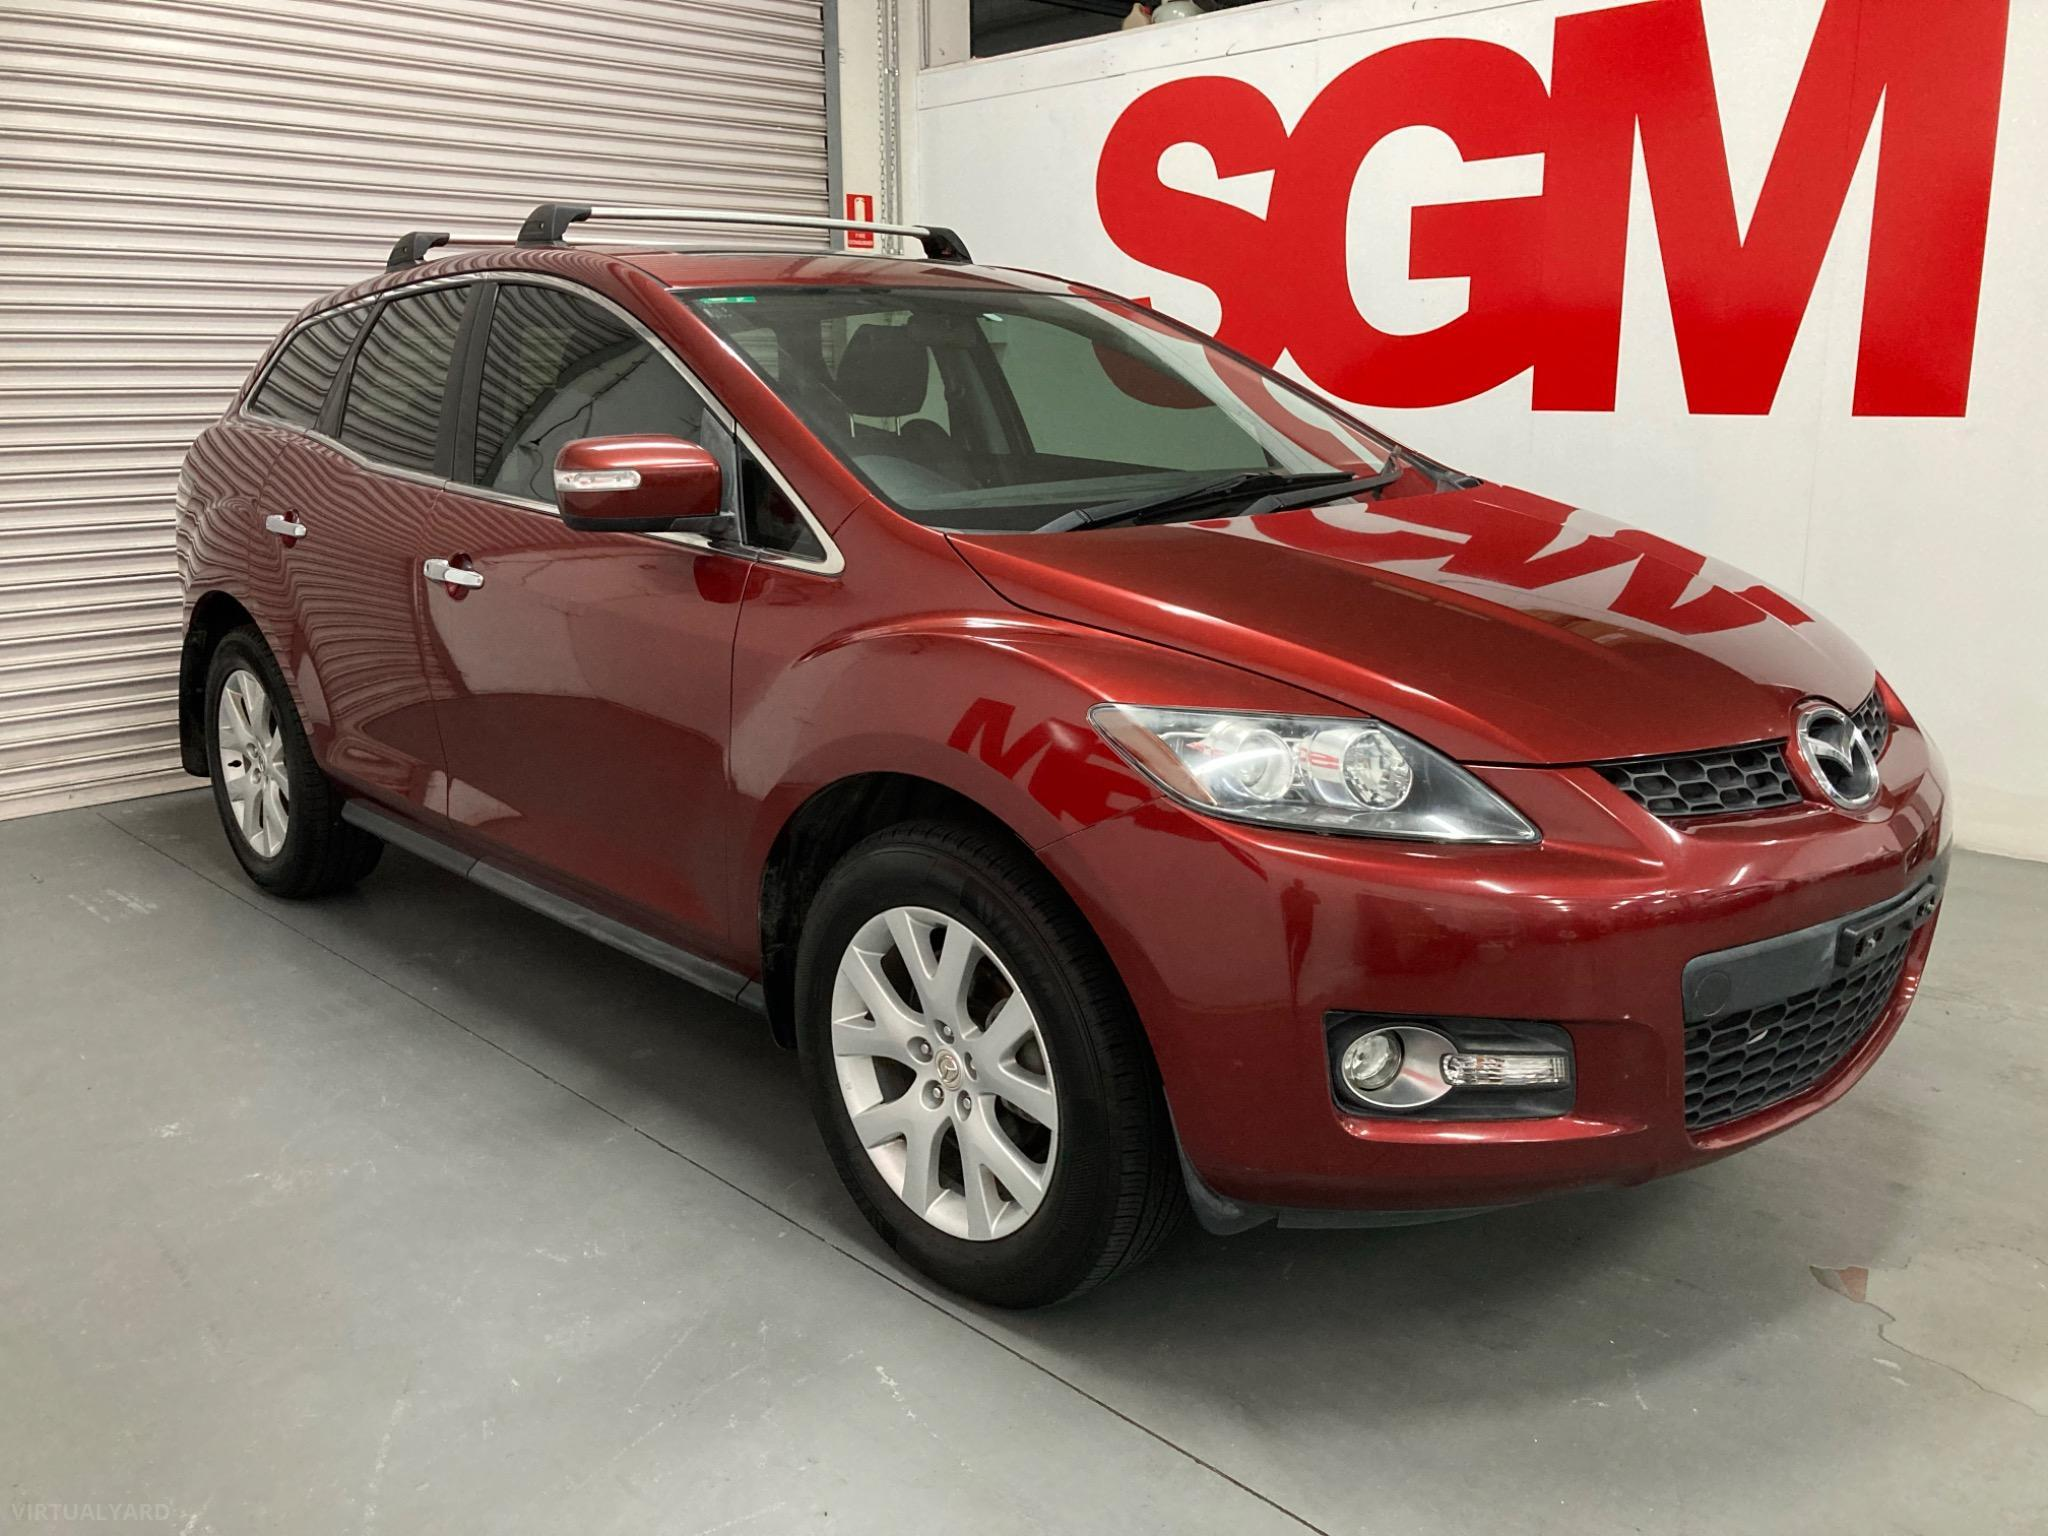 2007 Mazda Cx-7 ER Series 2 Luxury Sports Wagon 5dr Activematic 6sp 4WD 2.3T Picture 8